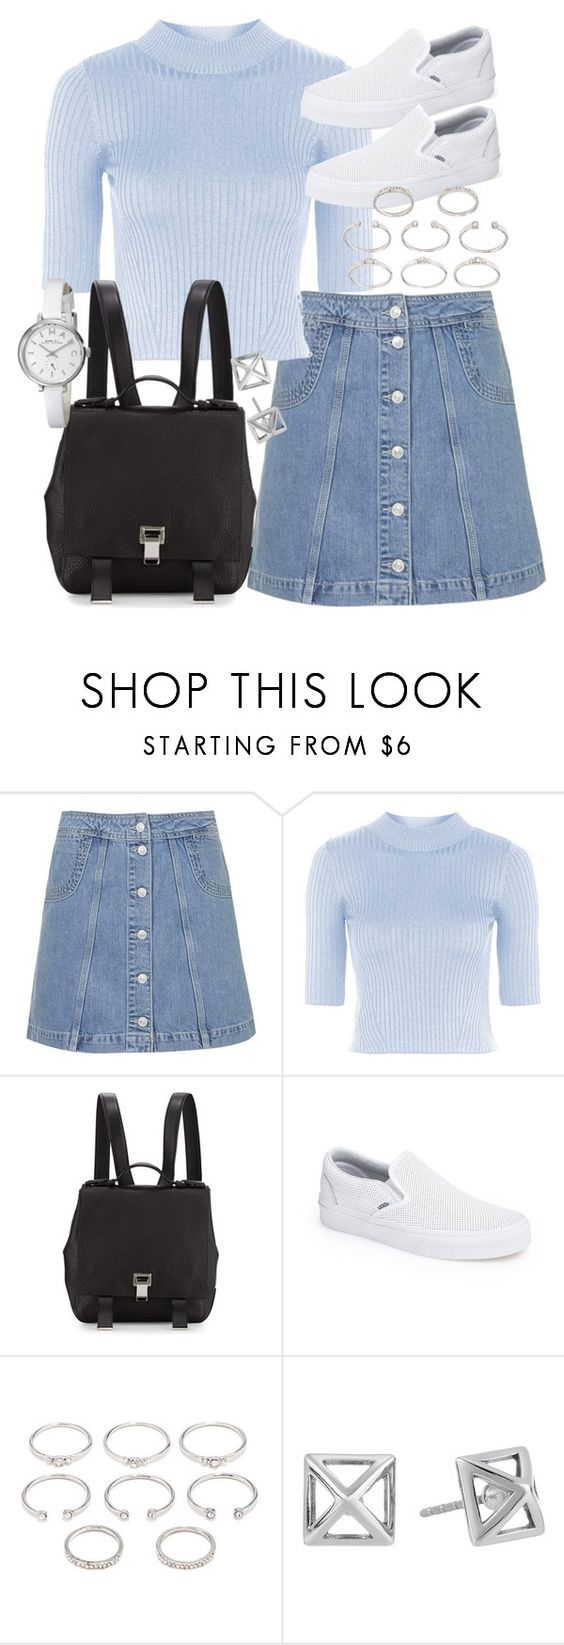 """Untitled #18852"" by florencia95 ❤ liked on Polyvore featuring Topshop, Proenza Schouler, Vans, Forever 21, Rebecca Minkoff and Marc by Marc Jacobs"